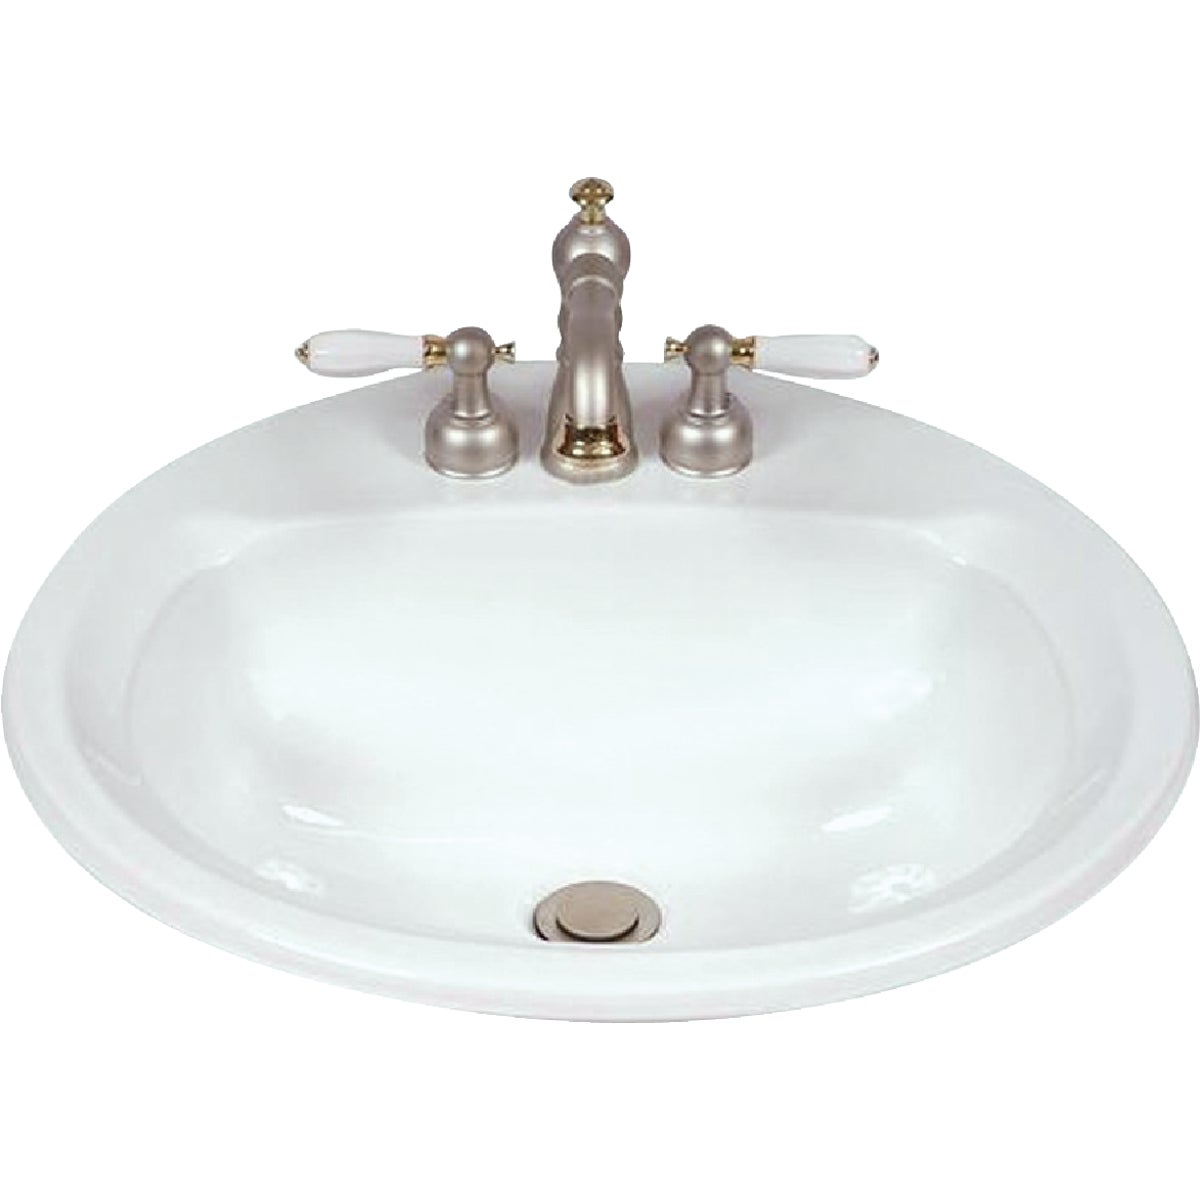 WHT ROUND LAVATORY BOWL - 249410070 by Mansfield Plumbing